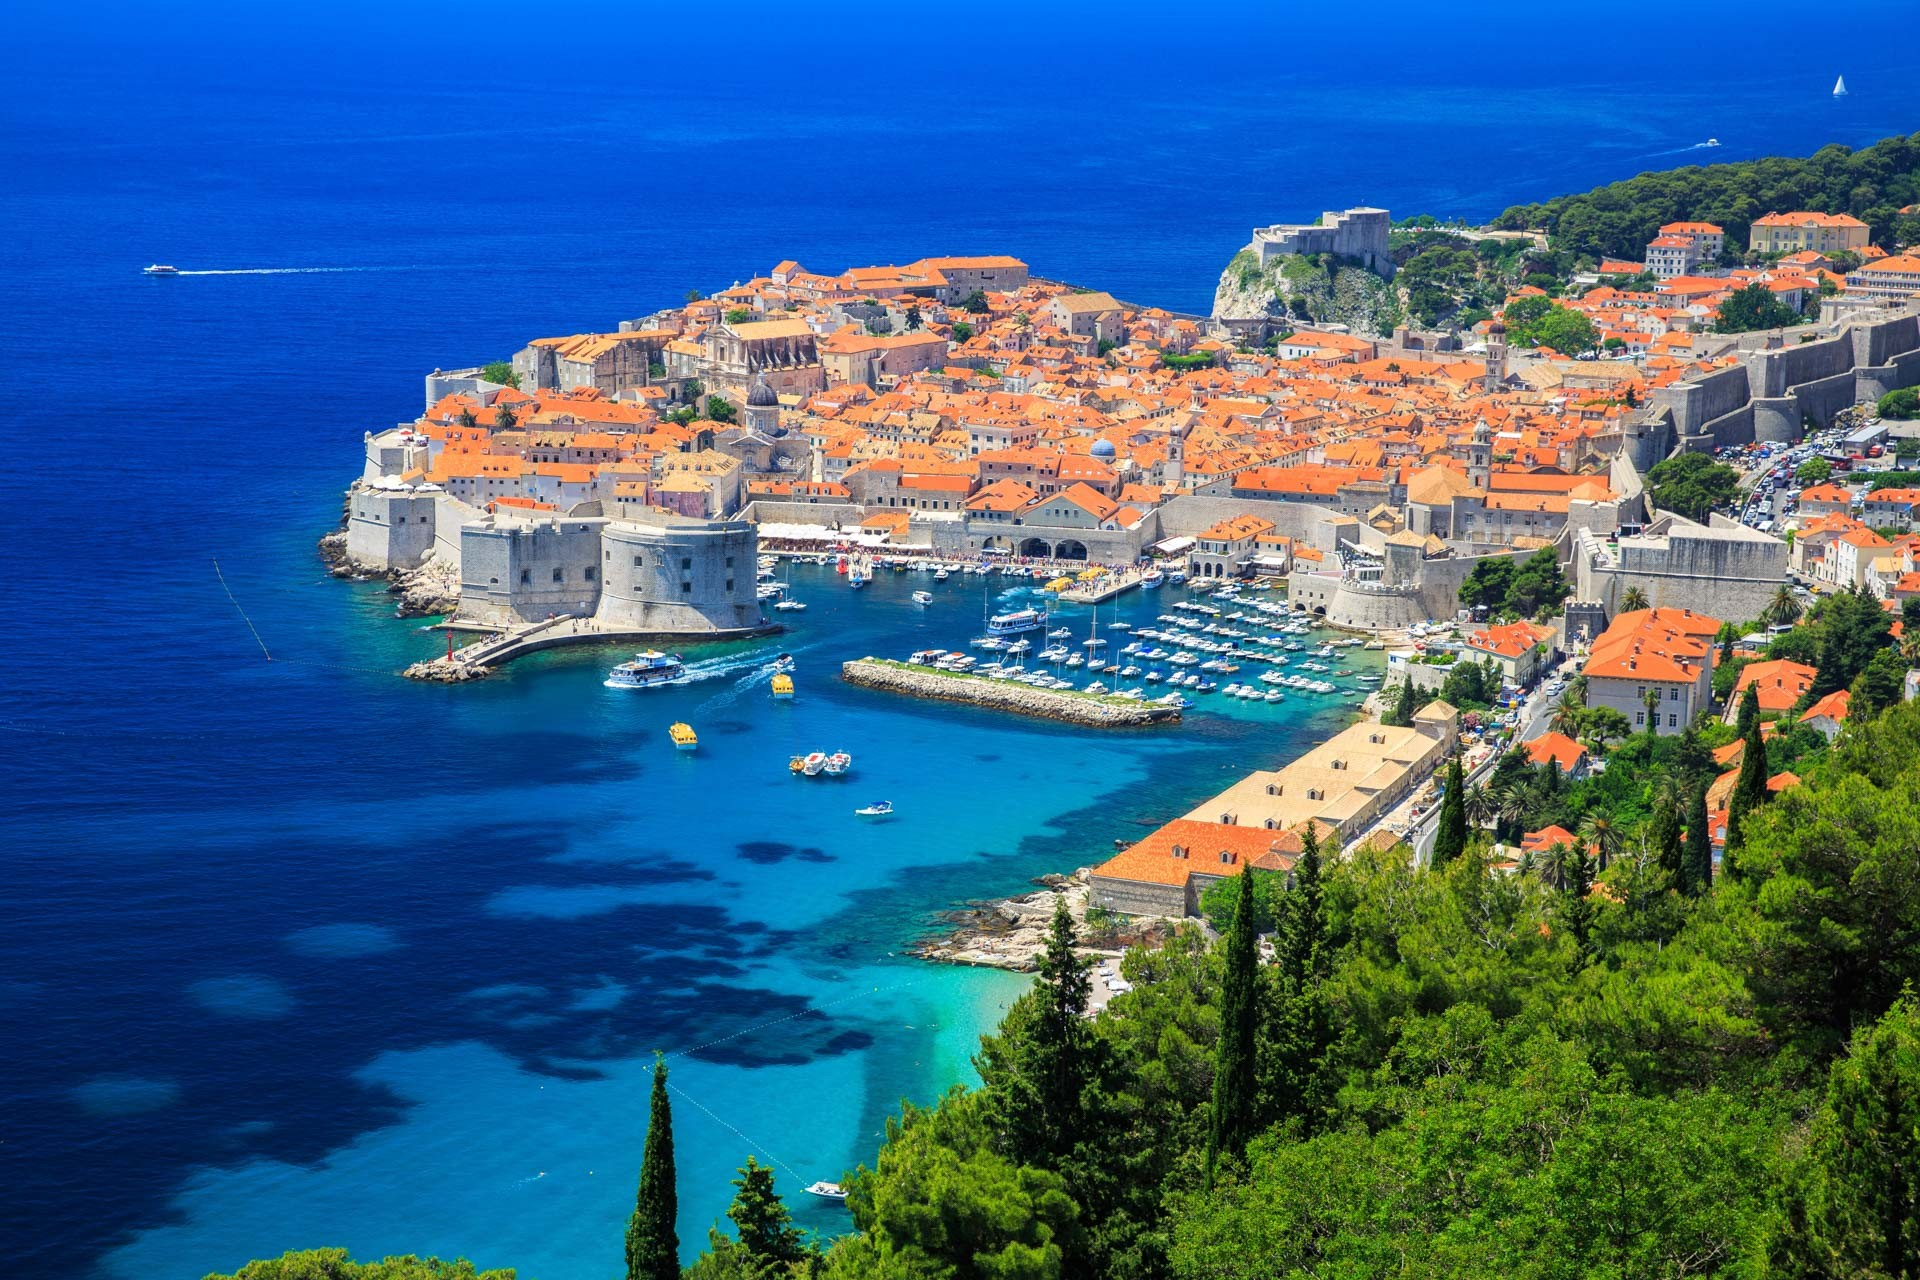 Dubrovnik – Dubrovnik –  Dubrovnik, Land and Cruise in 15 days - Croatia